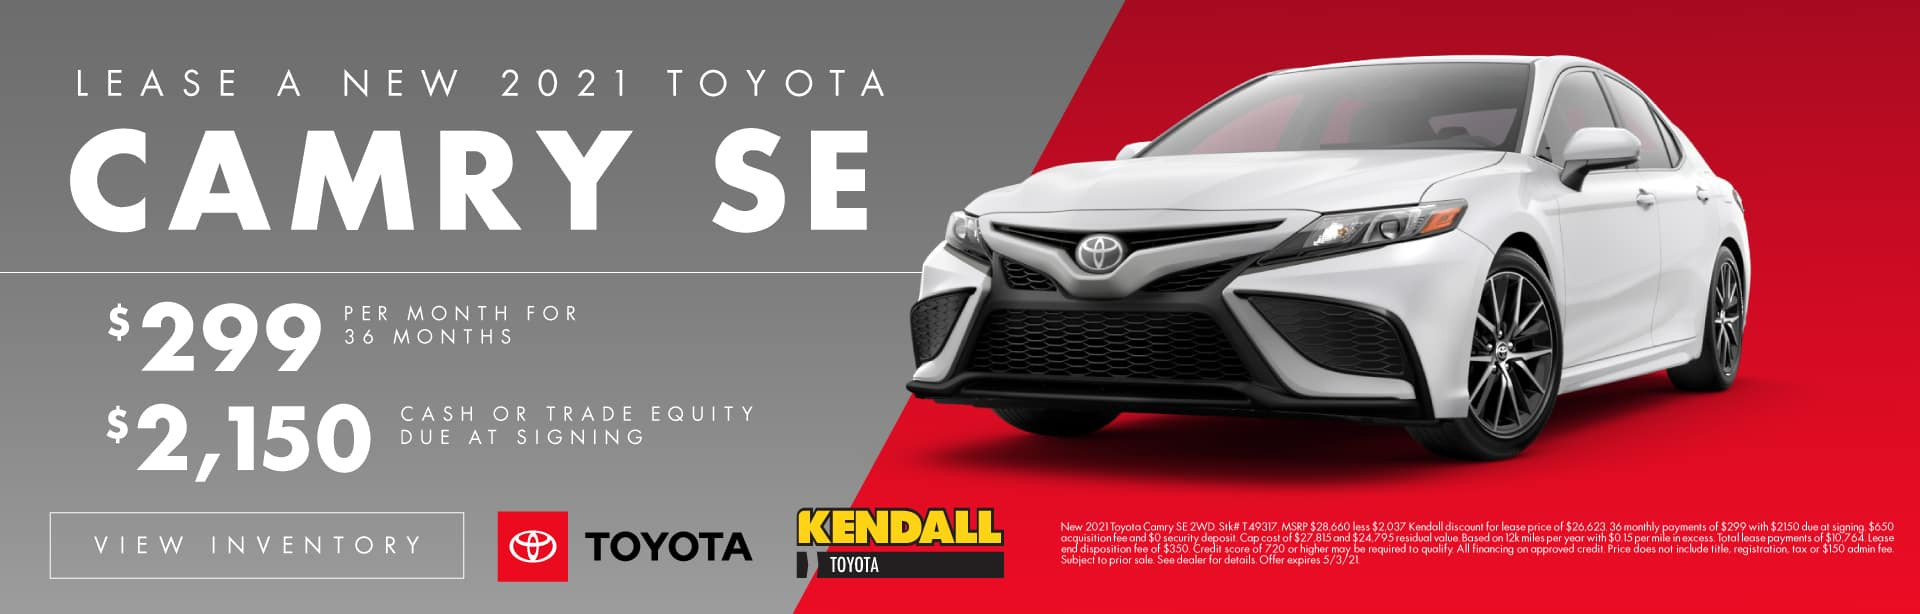 17453-eugtoy-Apr21-Web-Banners-CAMRY